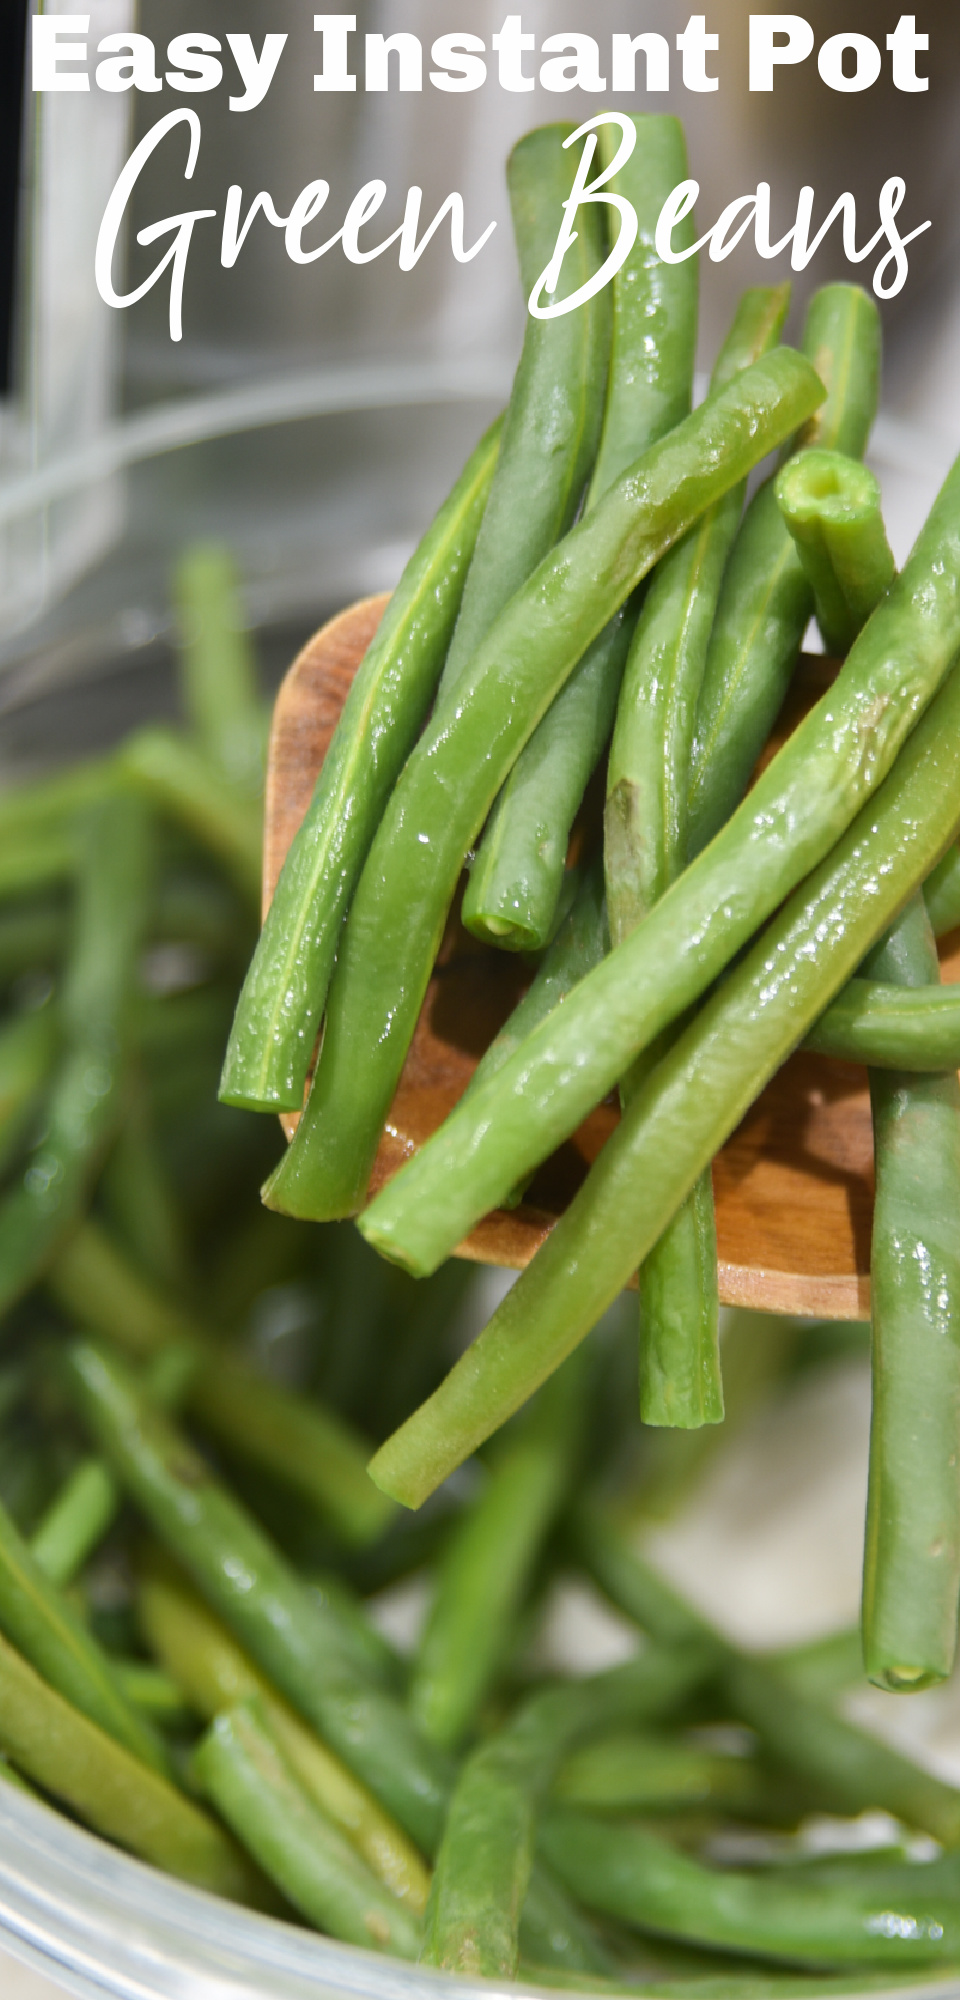 Green beans are one of the easiest and most versatile side dishes. Quickly make delicious green beans with the ease of your Instant Pot! via @simplysidedishes89